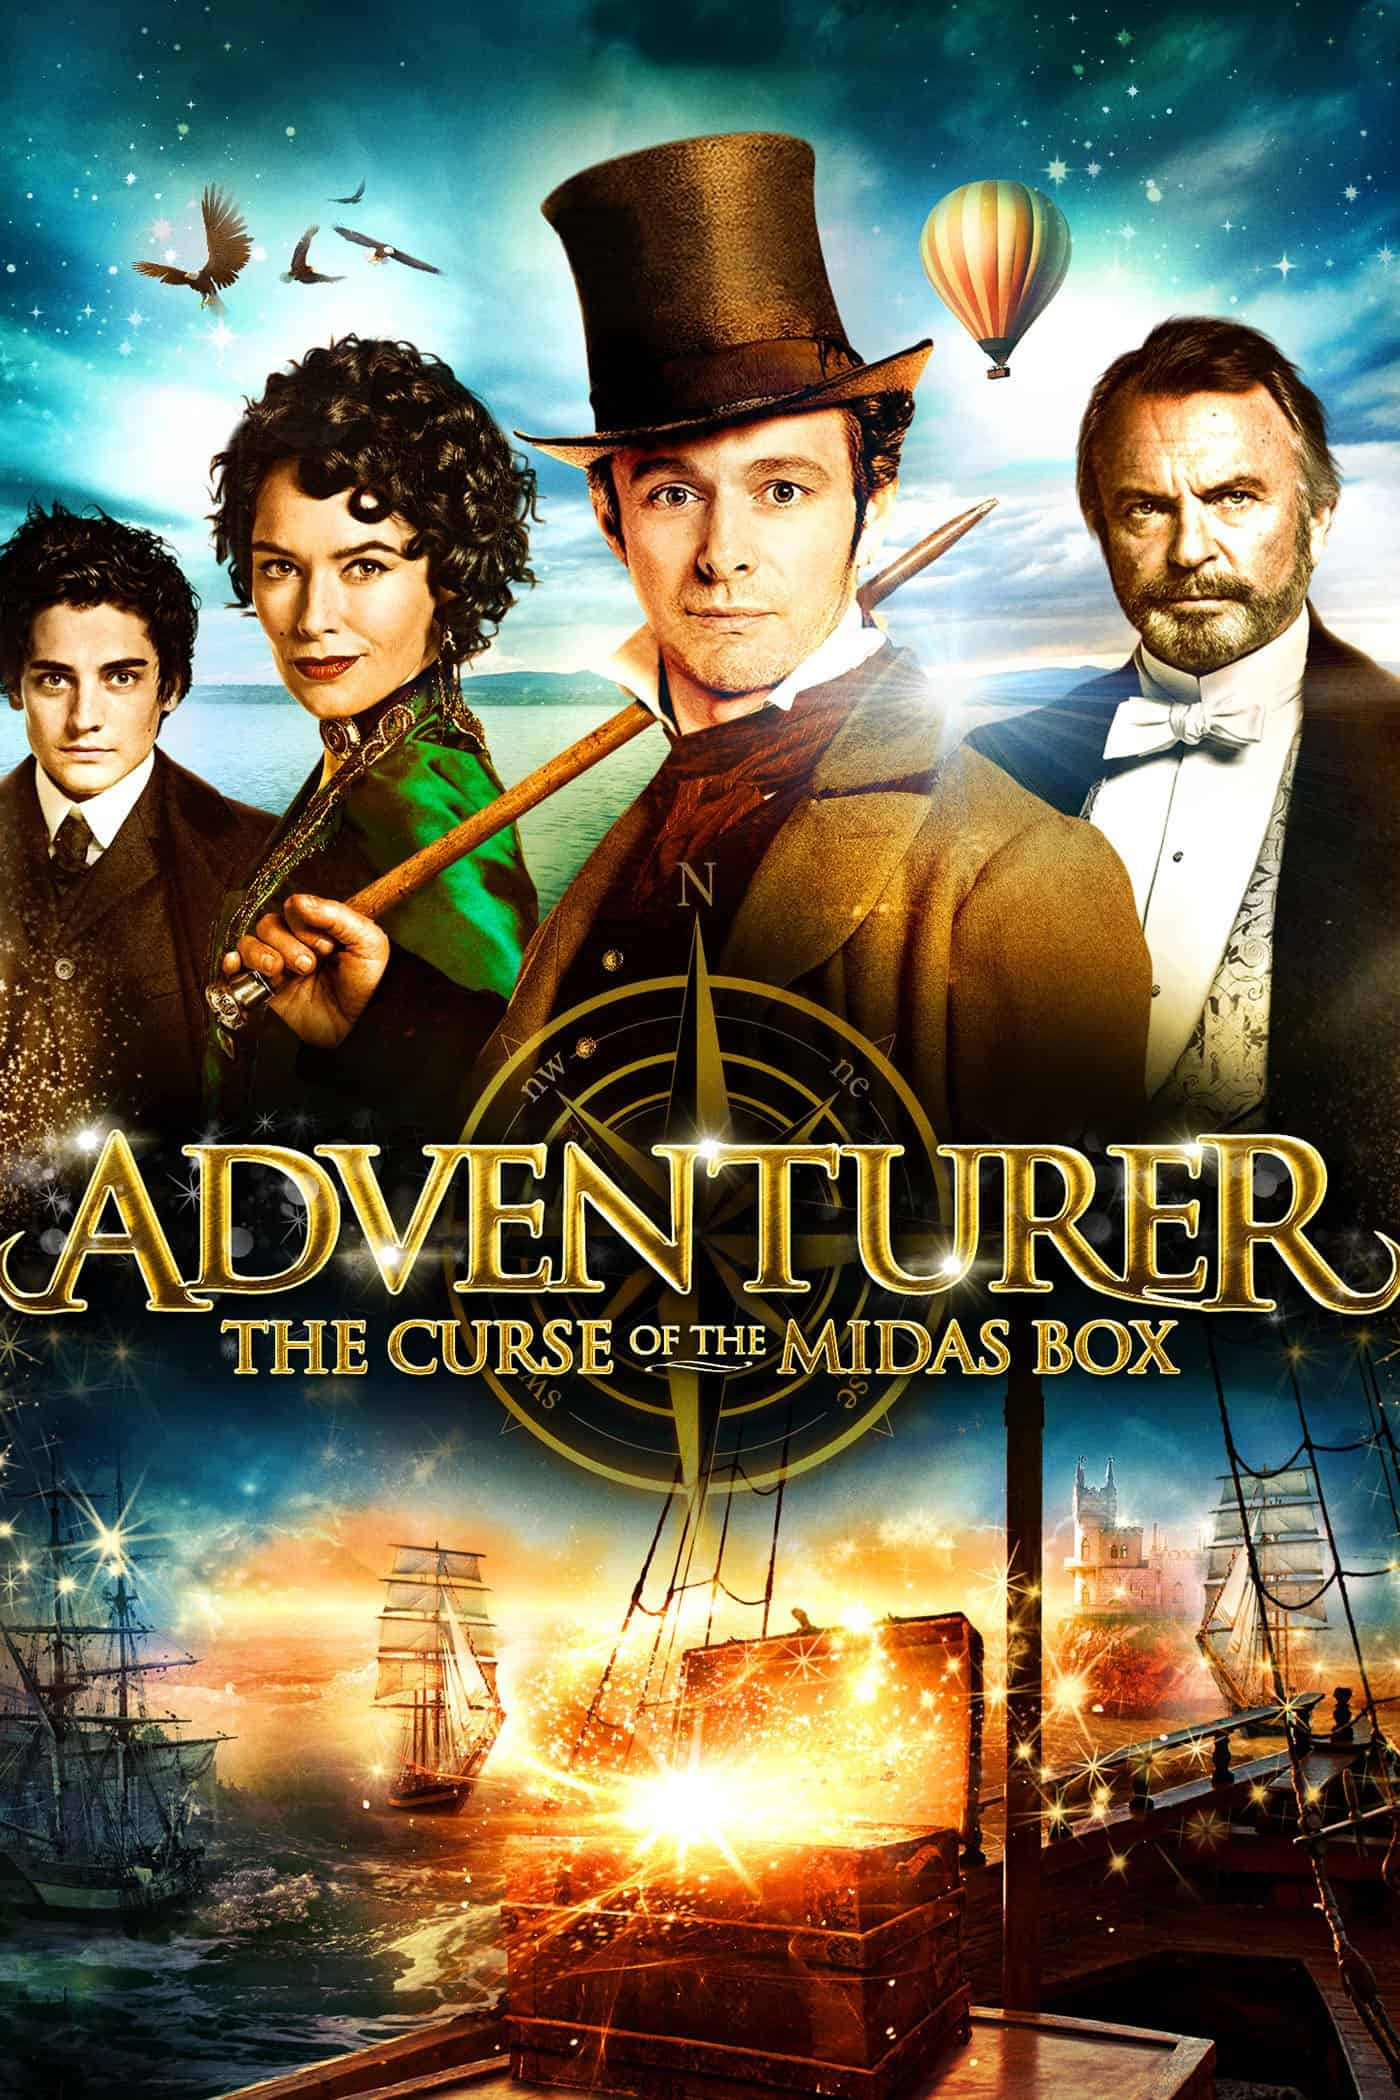 The Adventurer: The Curse of the Midas Box, 2013